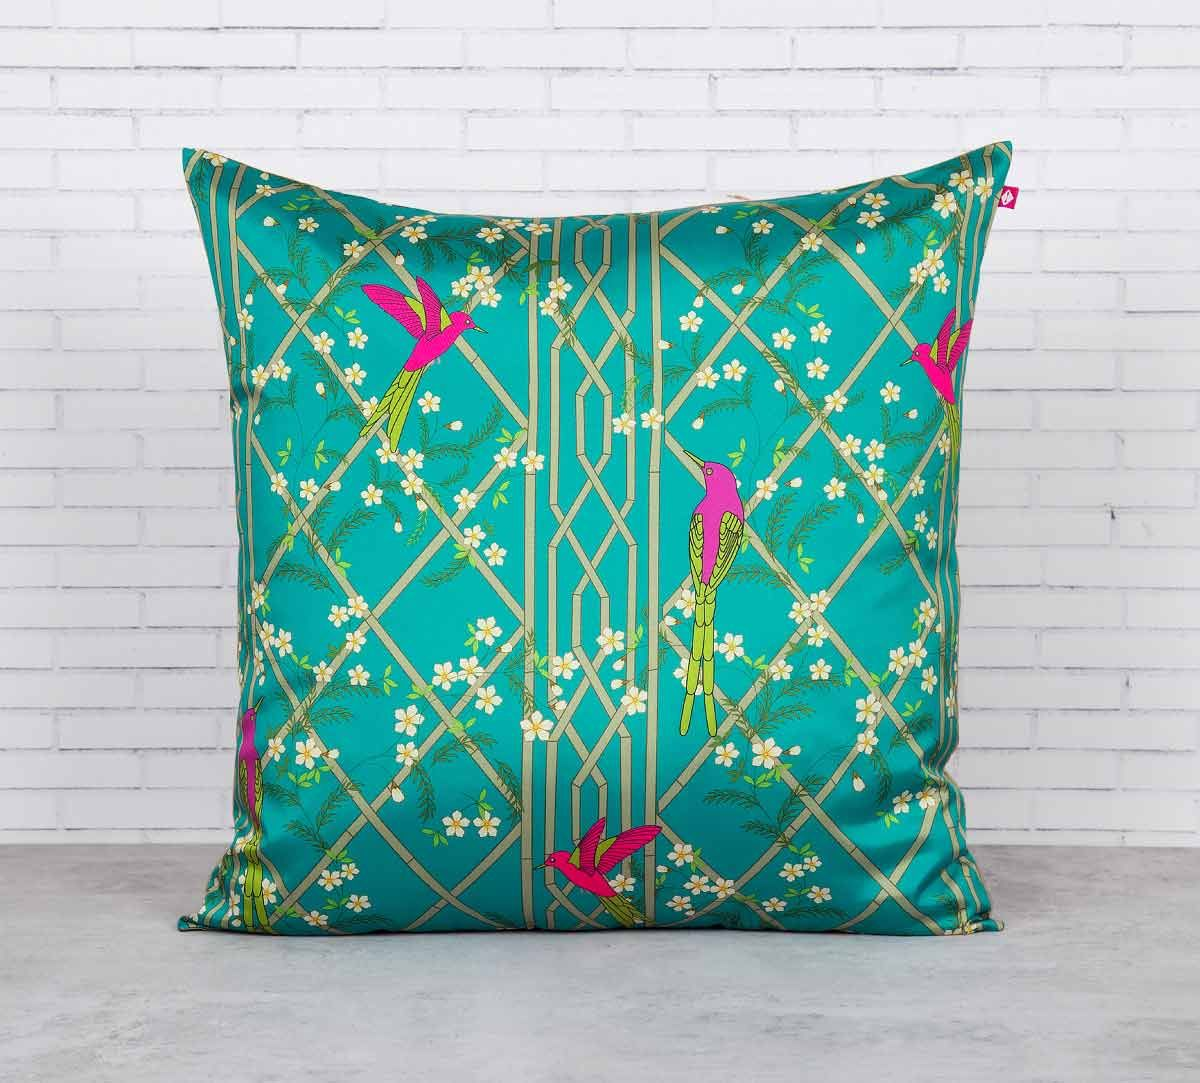 India Circus The Rose finchs Window View Blended Taf Silk Cushion Cover